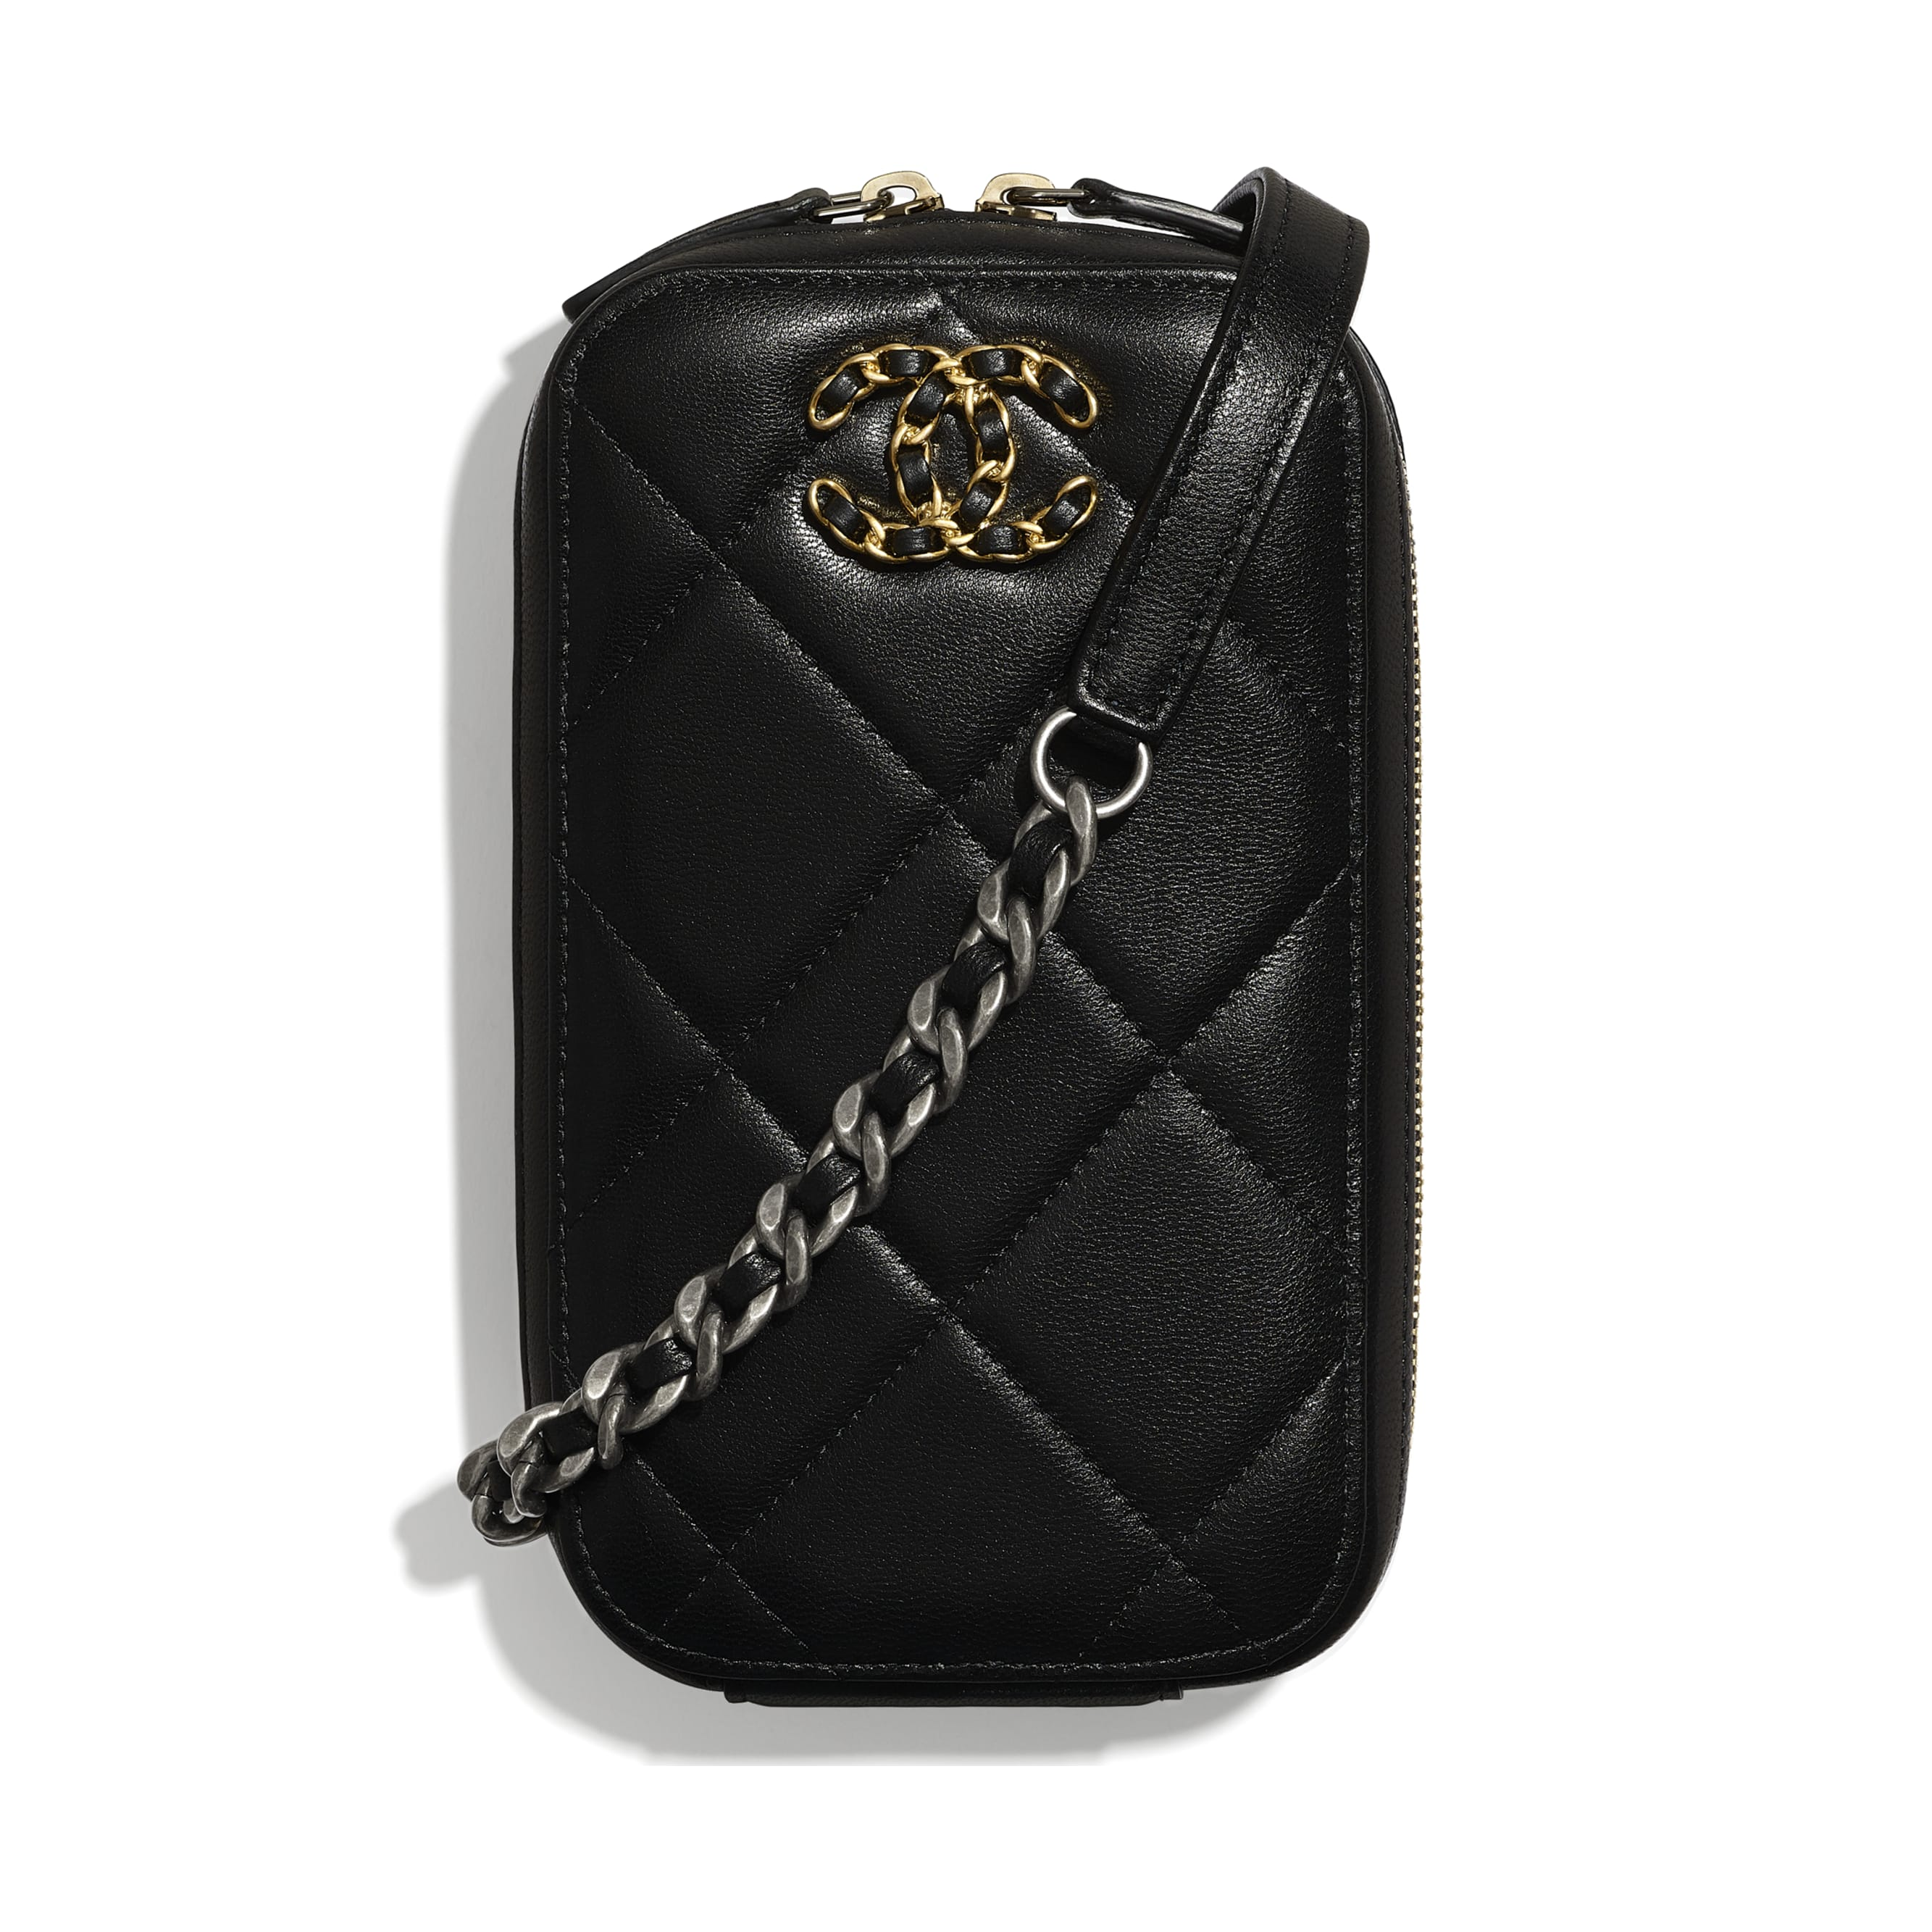 CHANEL 19 Phone Holder with Chain - Black - Shiny Goatskin, Gold-Tone, Silver-Tone & Ruthenium-Finish Metal - CHANEL - Default view - see standard sized version